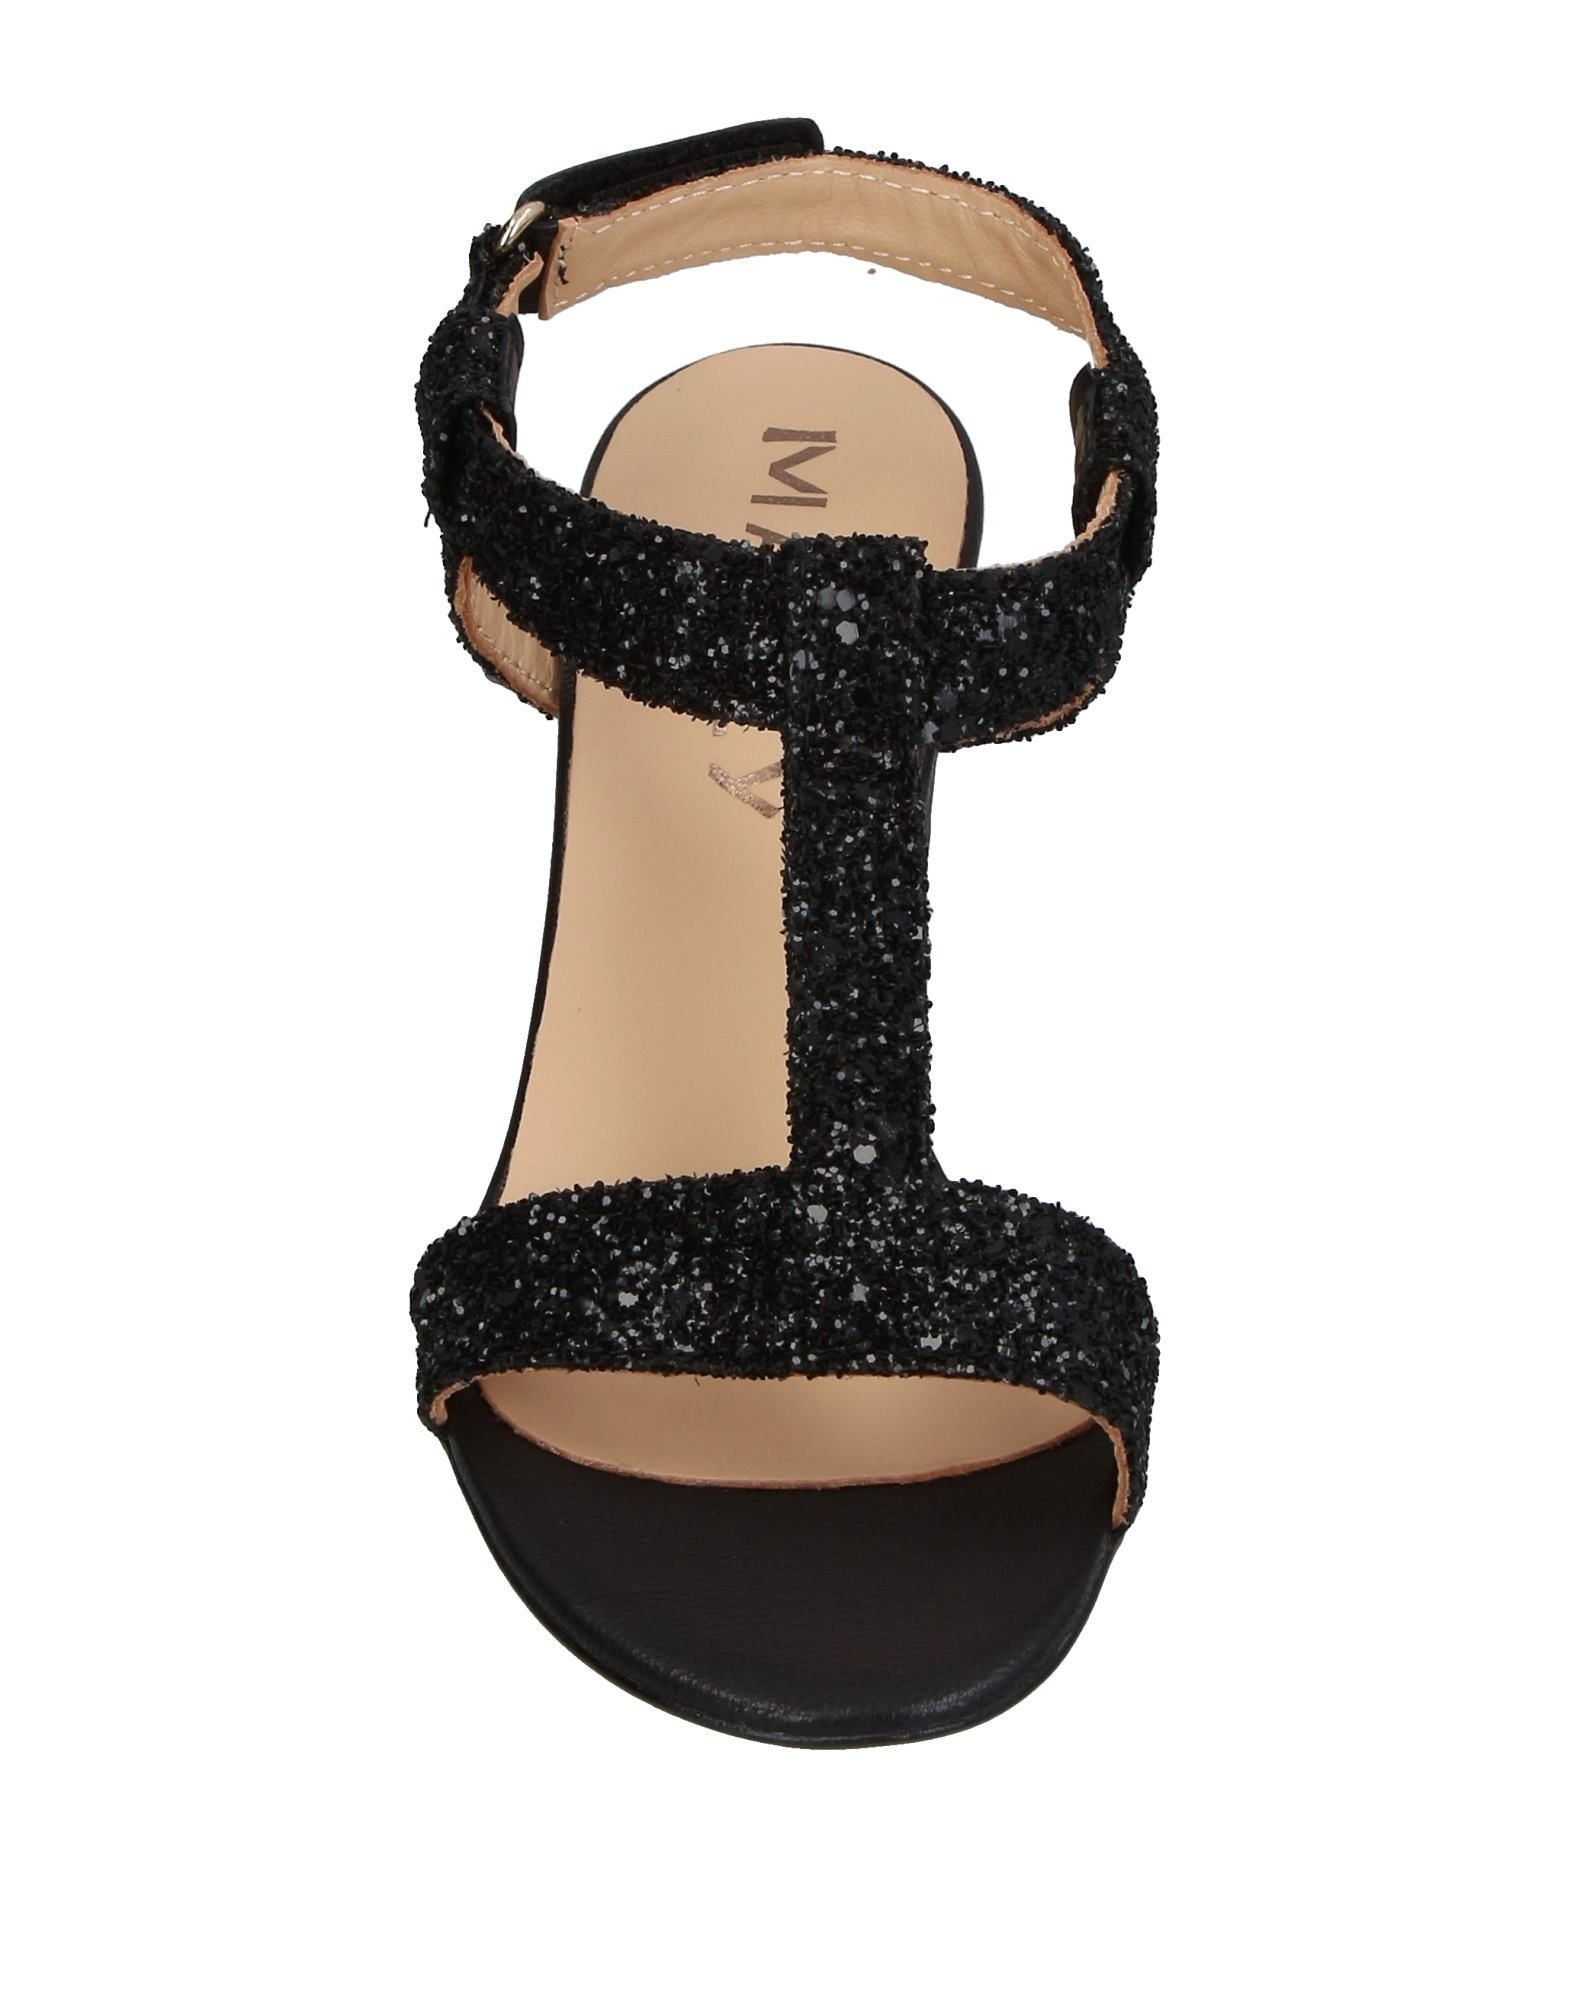 Mally Black Heeled Sandals